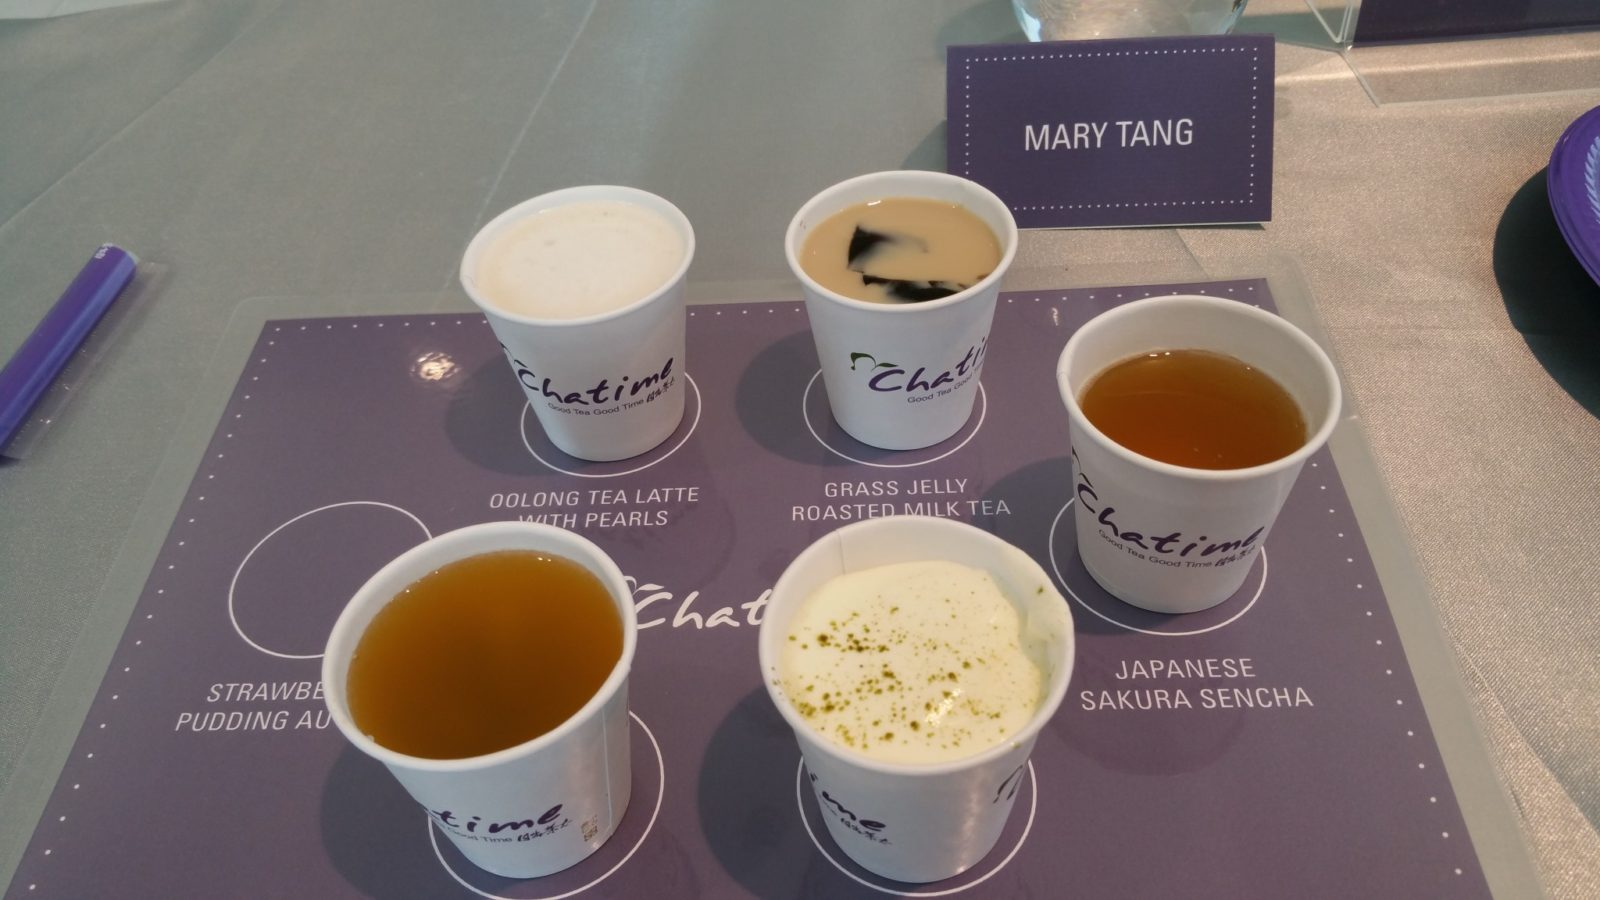 Chatime herbal tea - Out Of The Samples My Favourite Was The Grass Jelly Roasted Milk Tea Which Is Also One Of The Best Sellers In Ontario I Also Absolutely Loved The